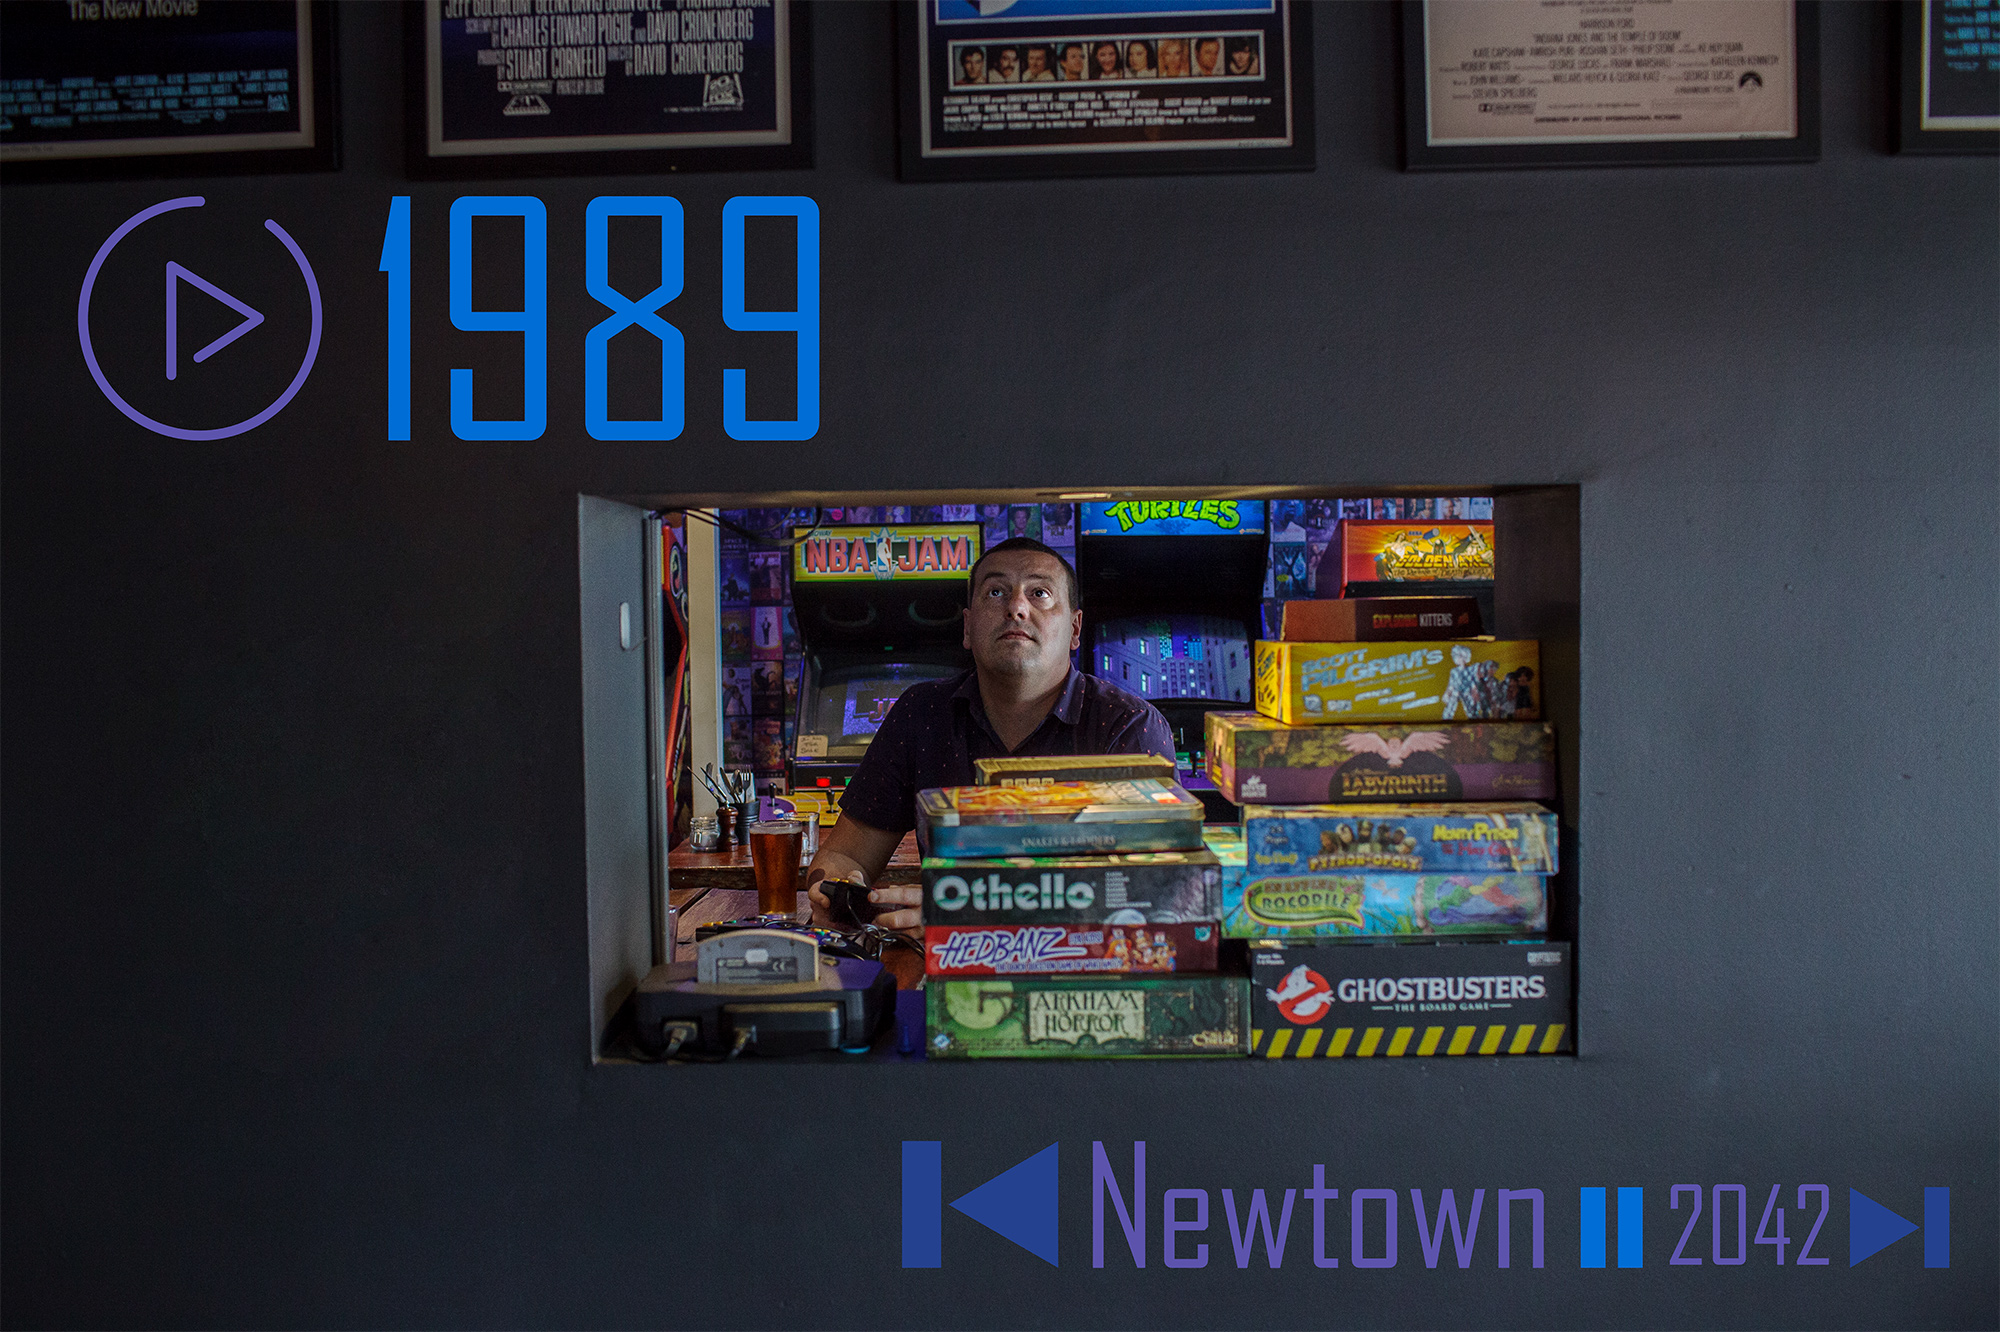 The menu includes Nintendo 64, as enjoyed here by this patron of 1989.